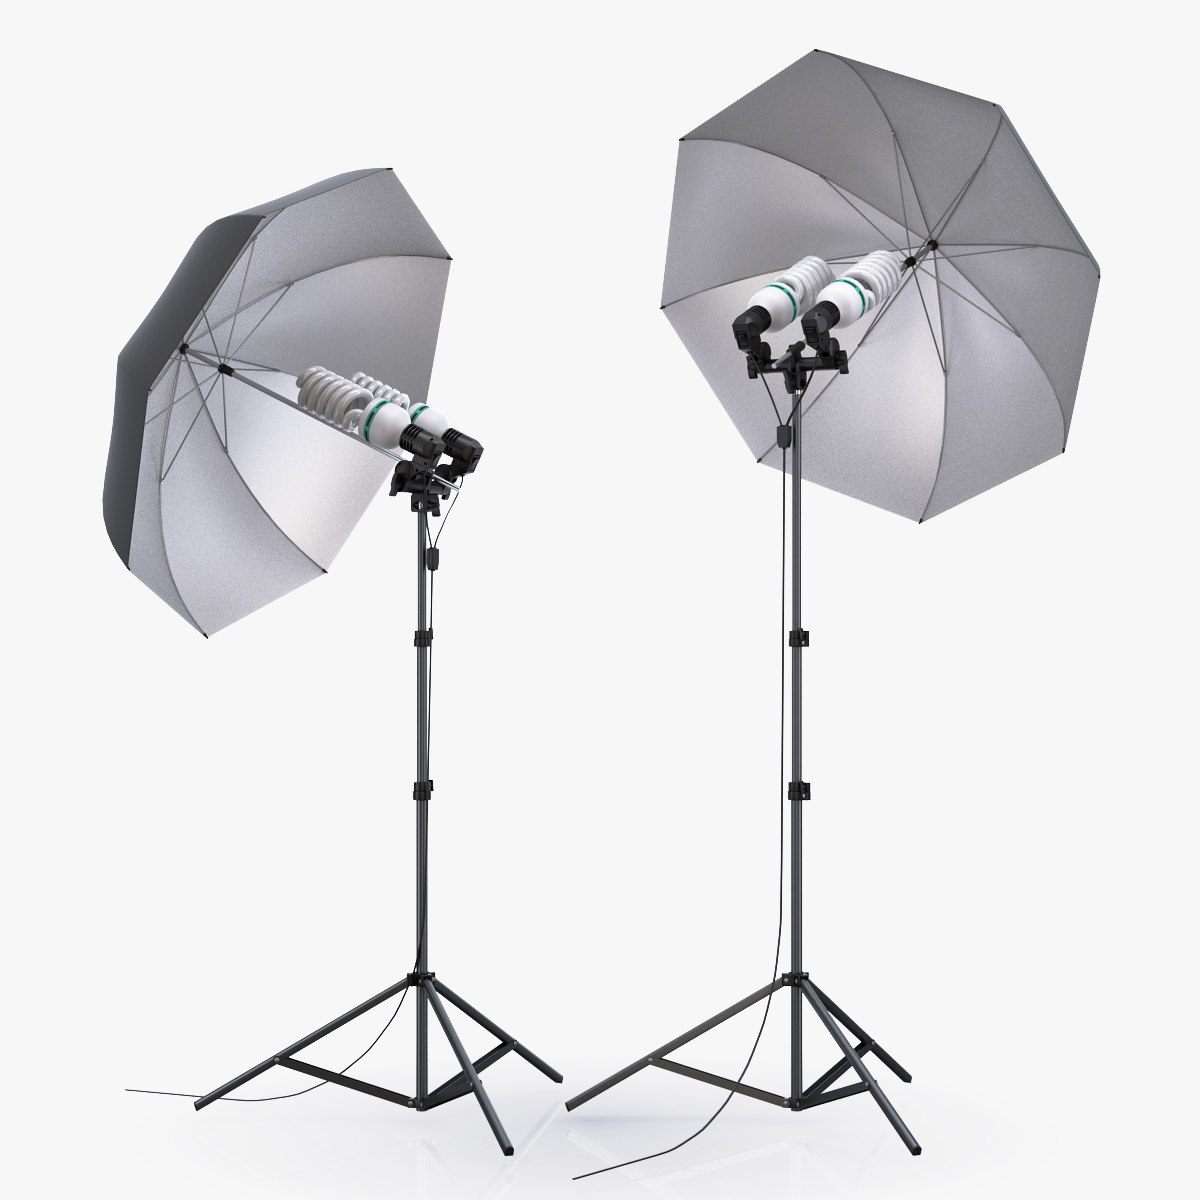 Searched 3d models for Umbrella Light for Umbrella Photography Lights  76uhy